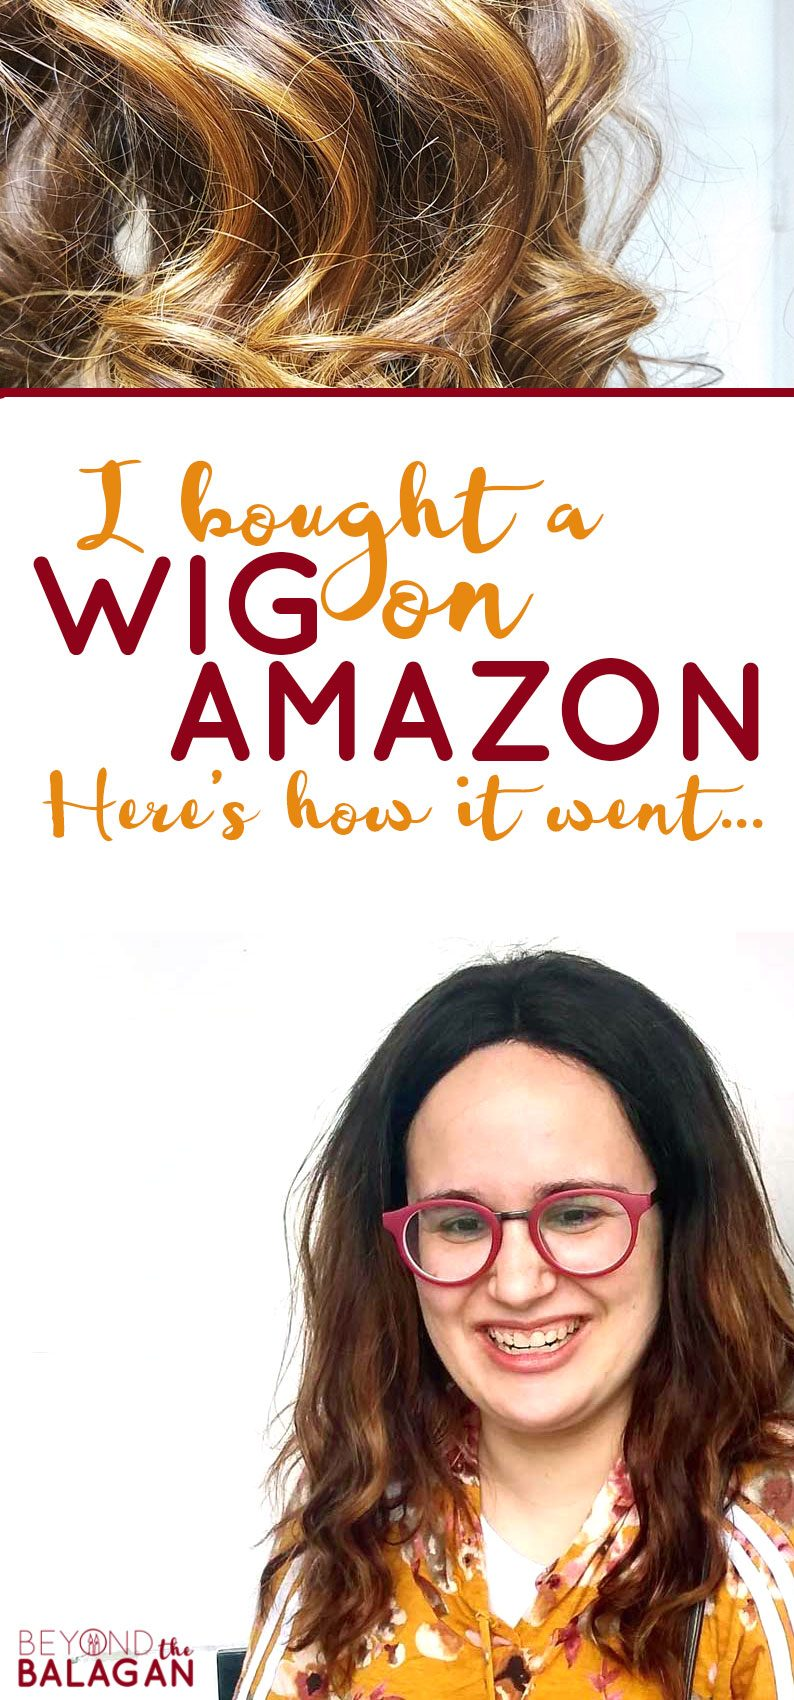 Click to see how my Amazon wig-buying experience went! If you wear wigs and want to know how to buy a cheap Chinese human hair wig, read my Amazon wigs review to see what I liked and what I didn't about the Amazon wig I purchased.